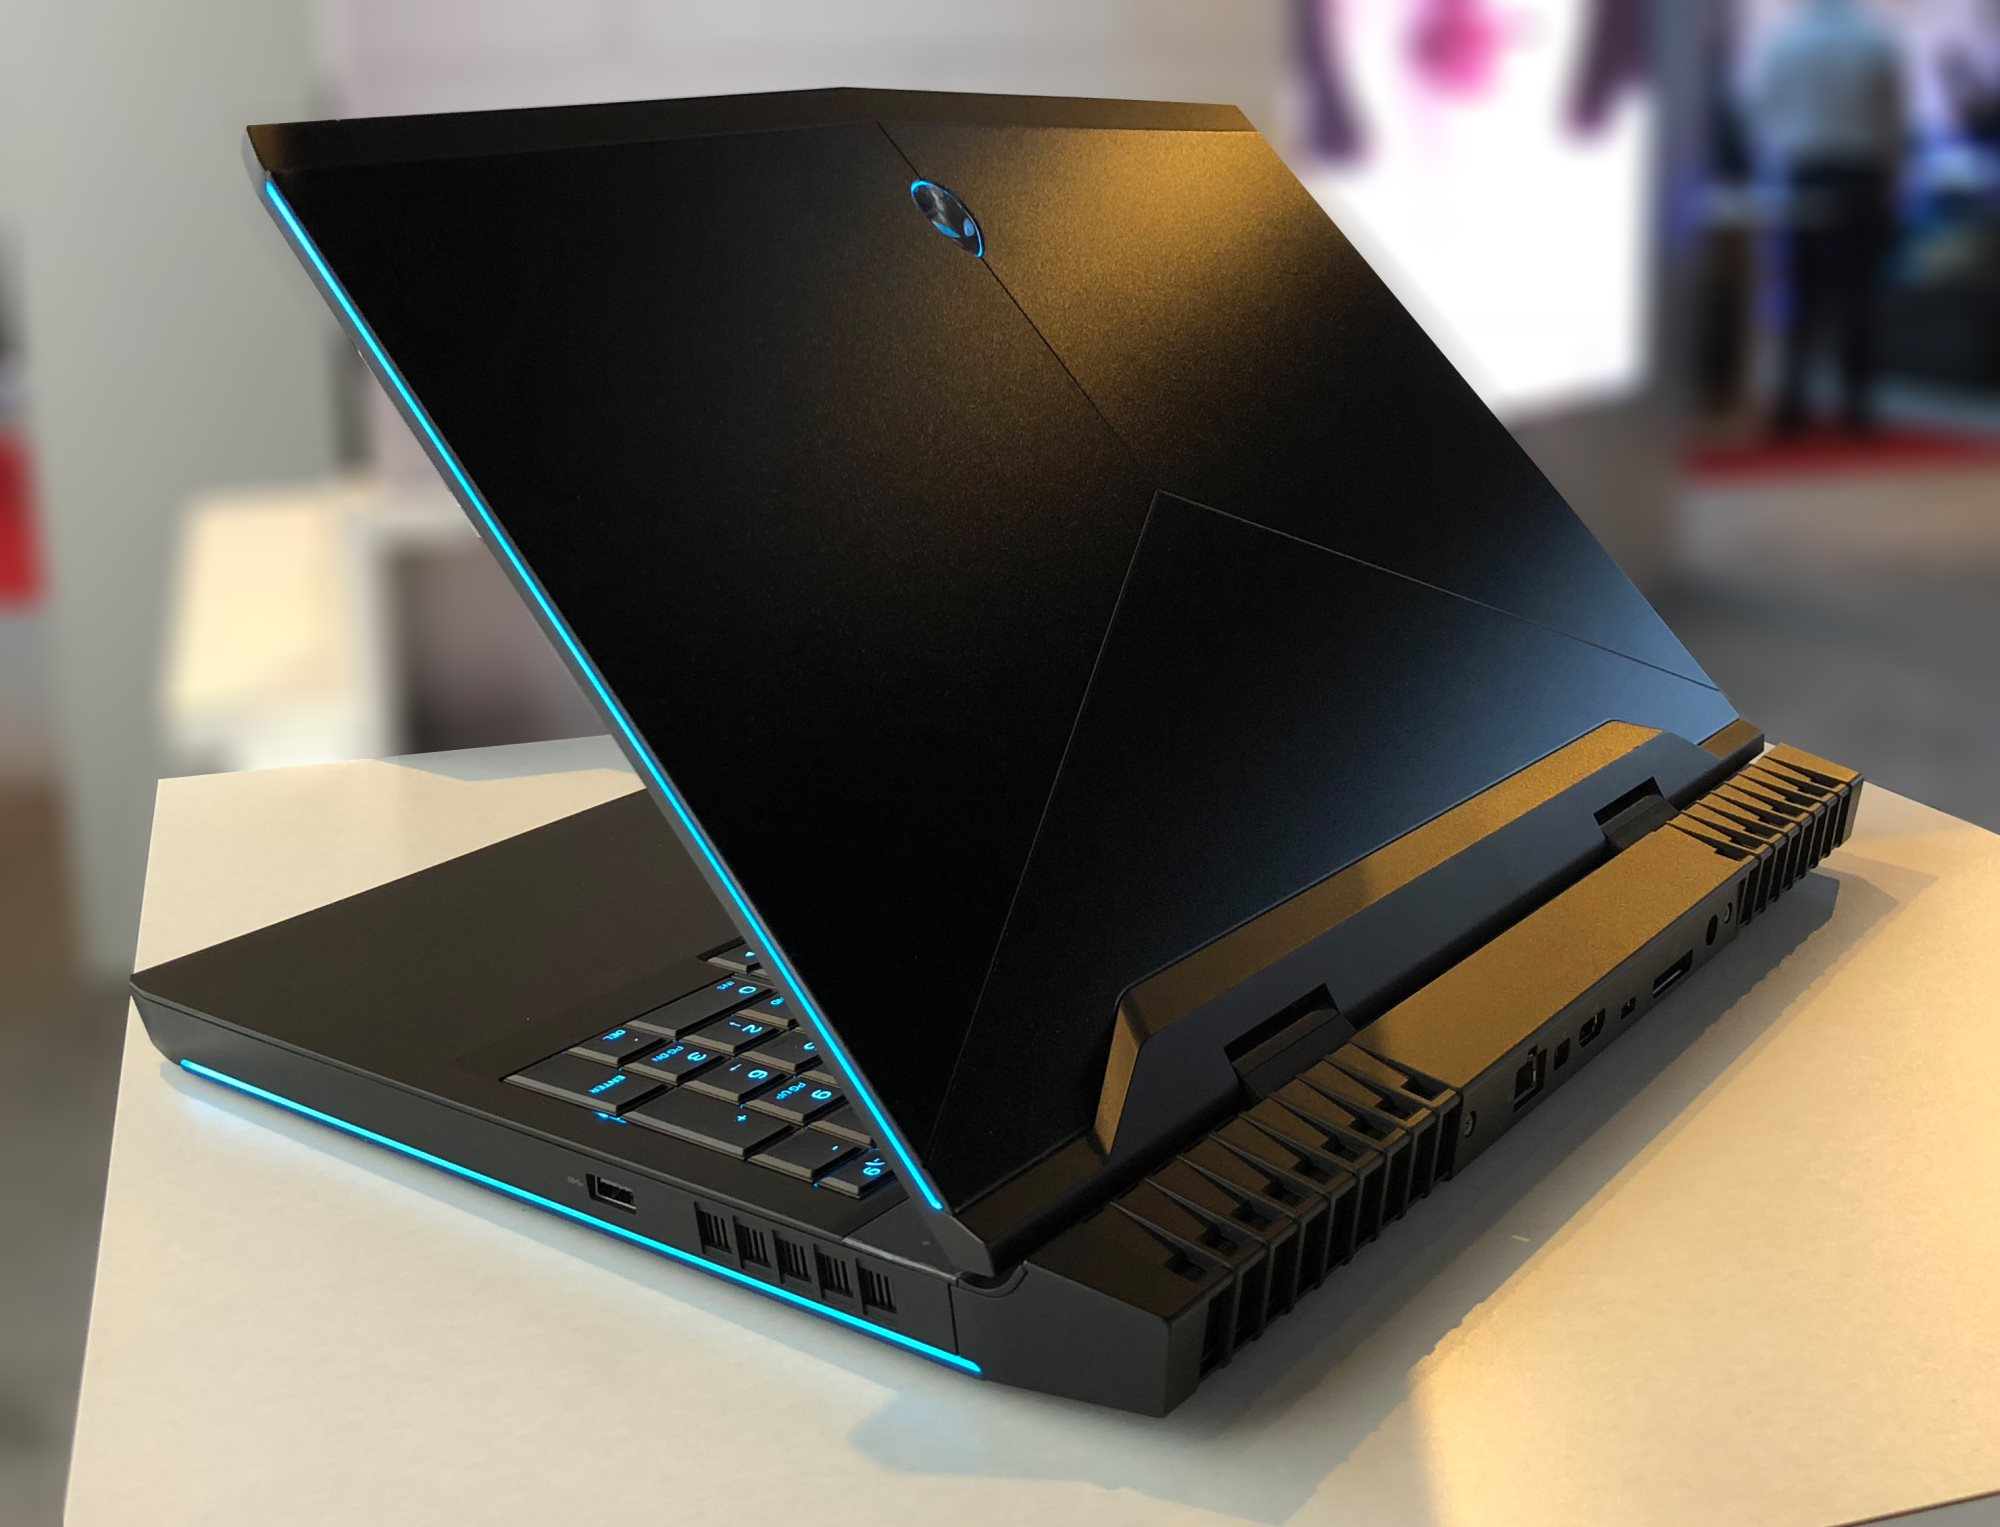 Alienware Laptops: 15R4 and 17R5 - Dell's Spring Range: New